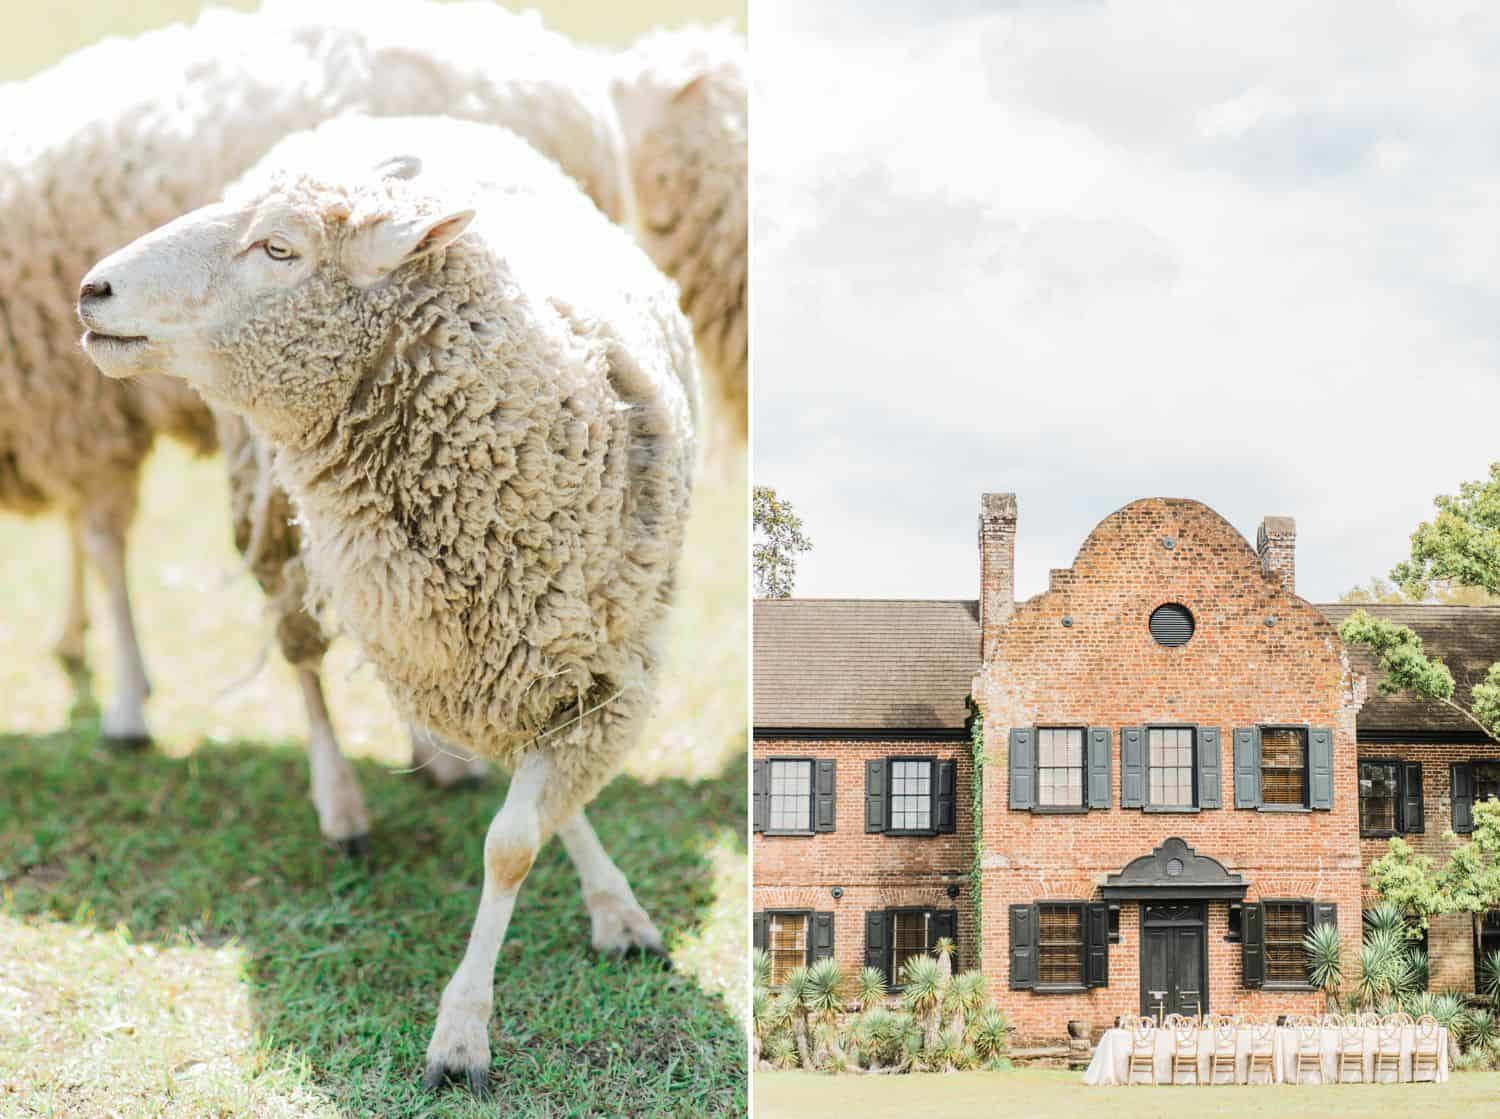 Farm Wedding with Brick Manor House and Sheep: Get Photography Clients with Styled Shoots